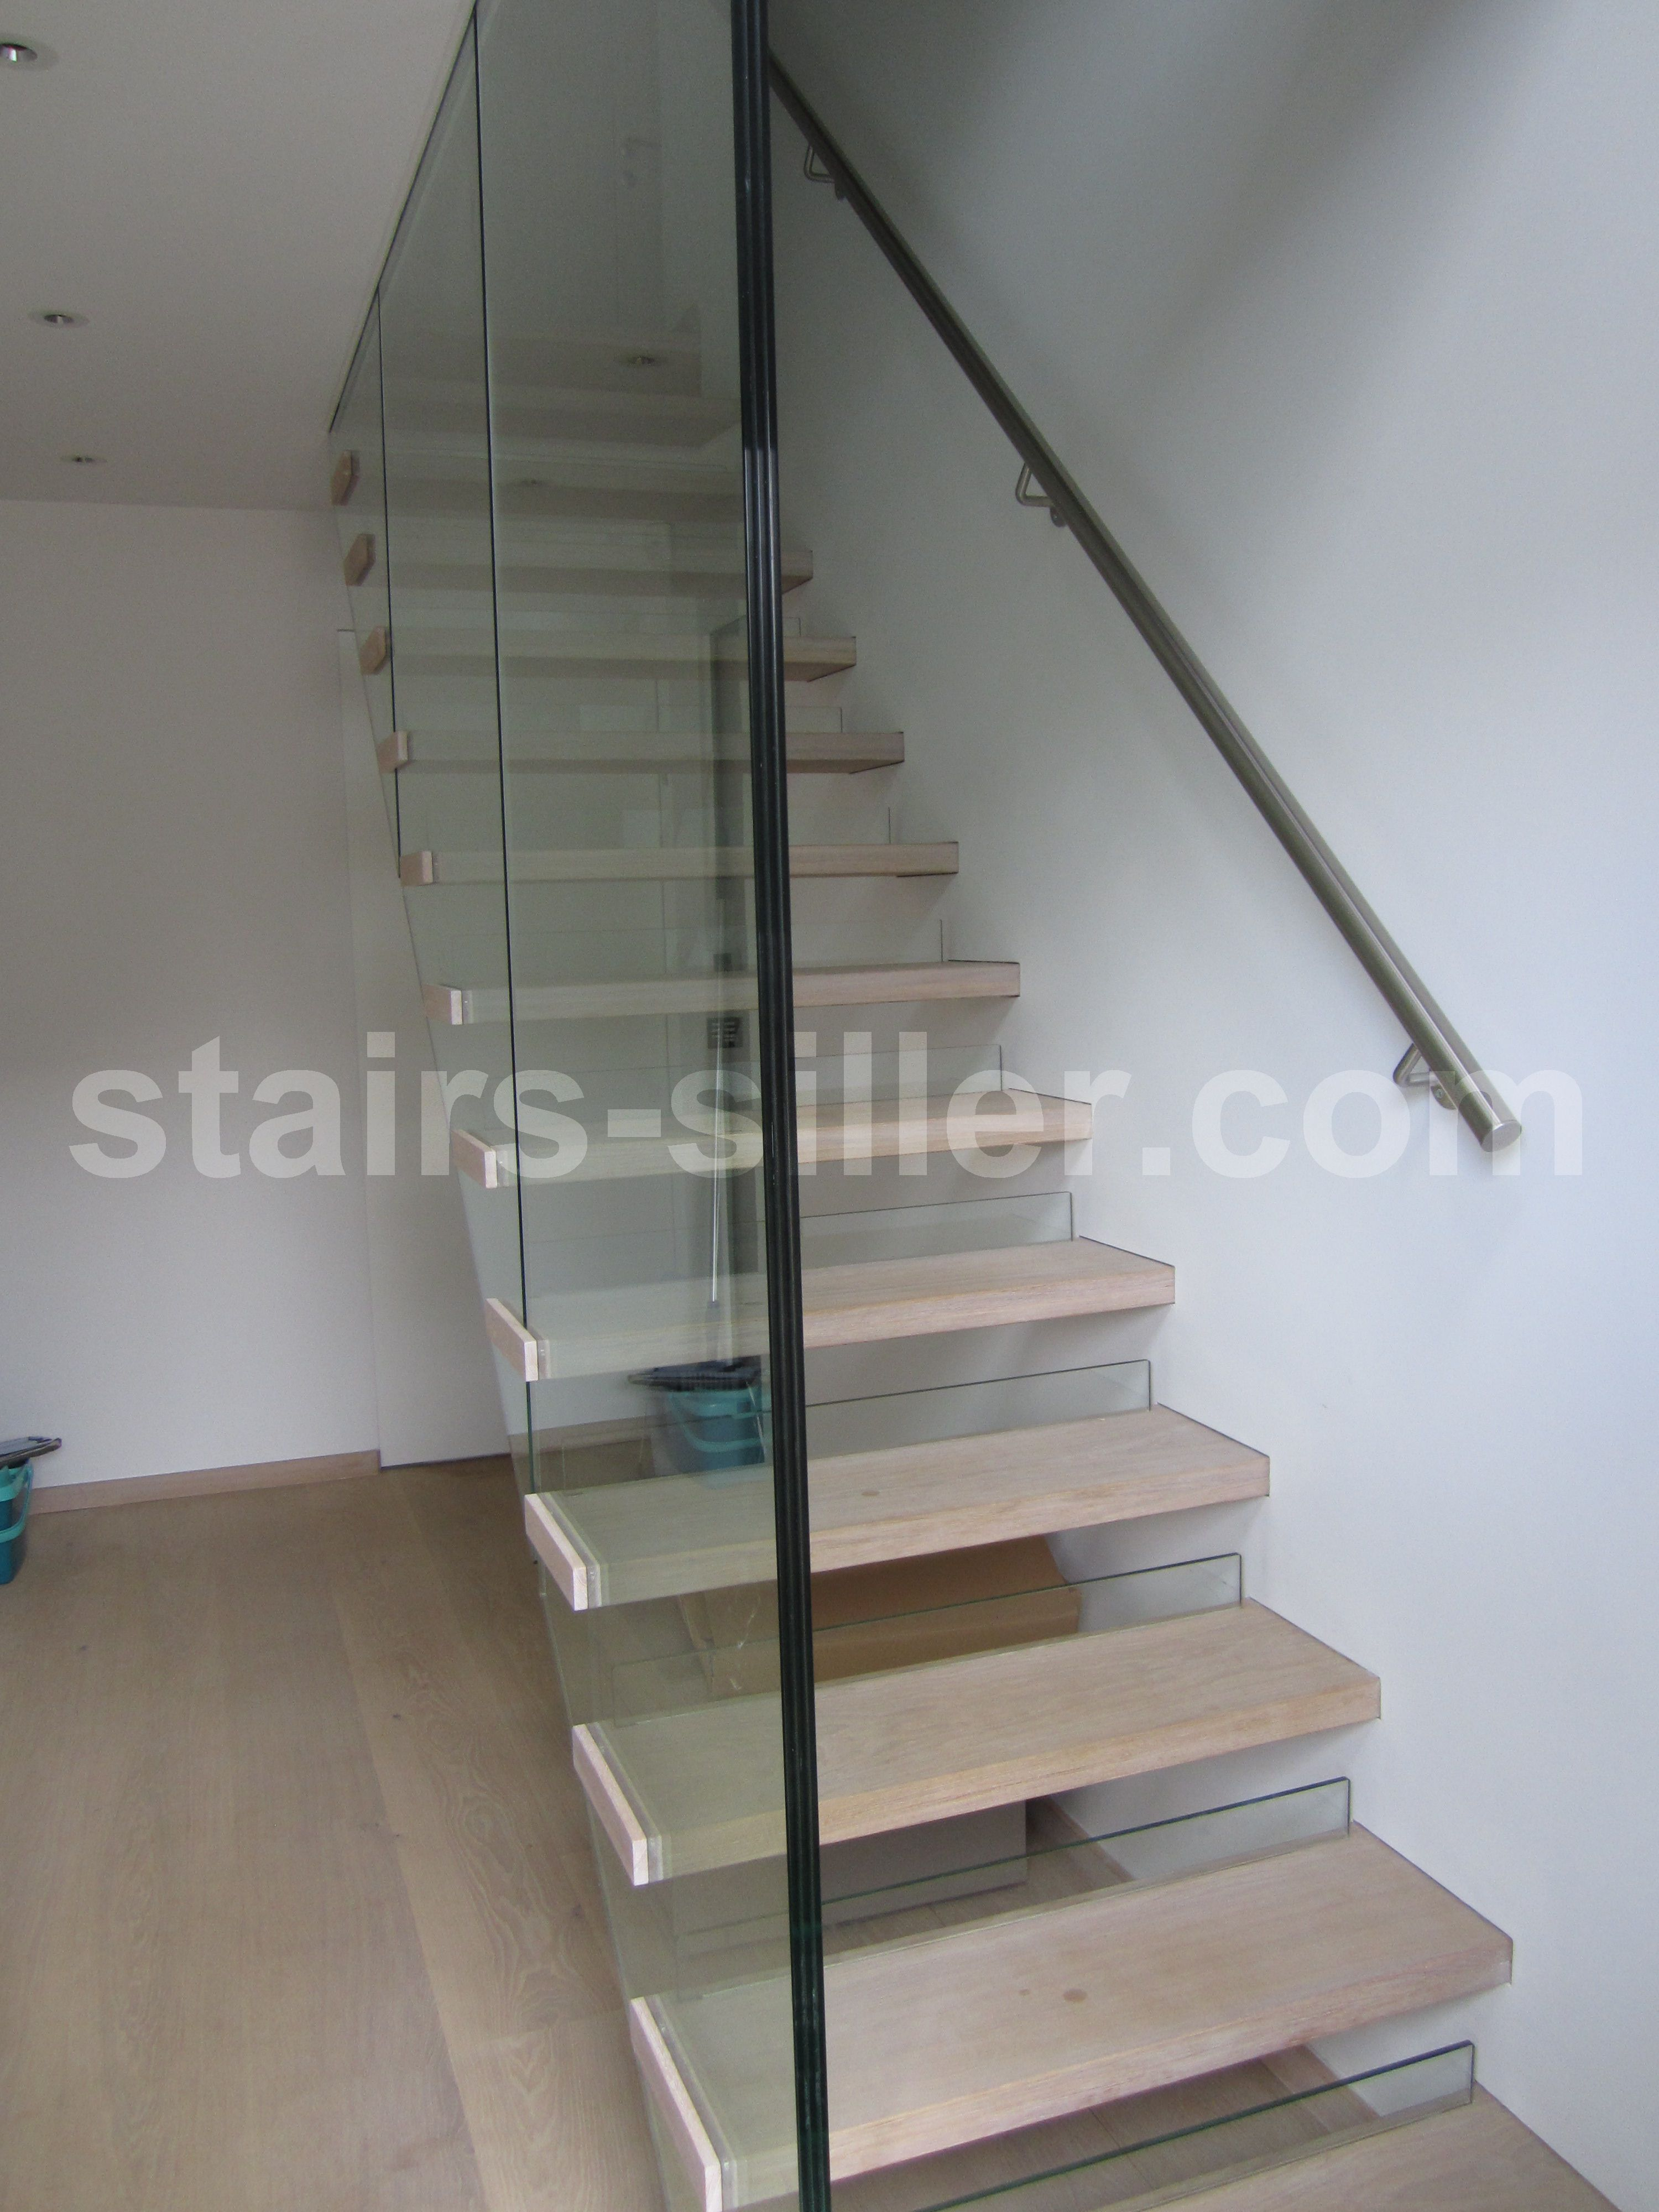 Zig-zag staircase, design by Siller, London, UK, www.stairs-siller ...